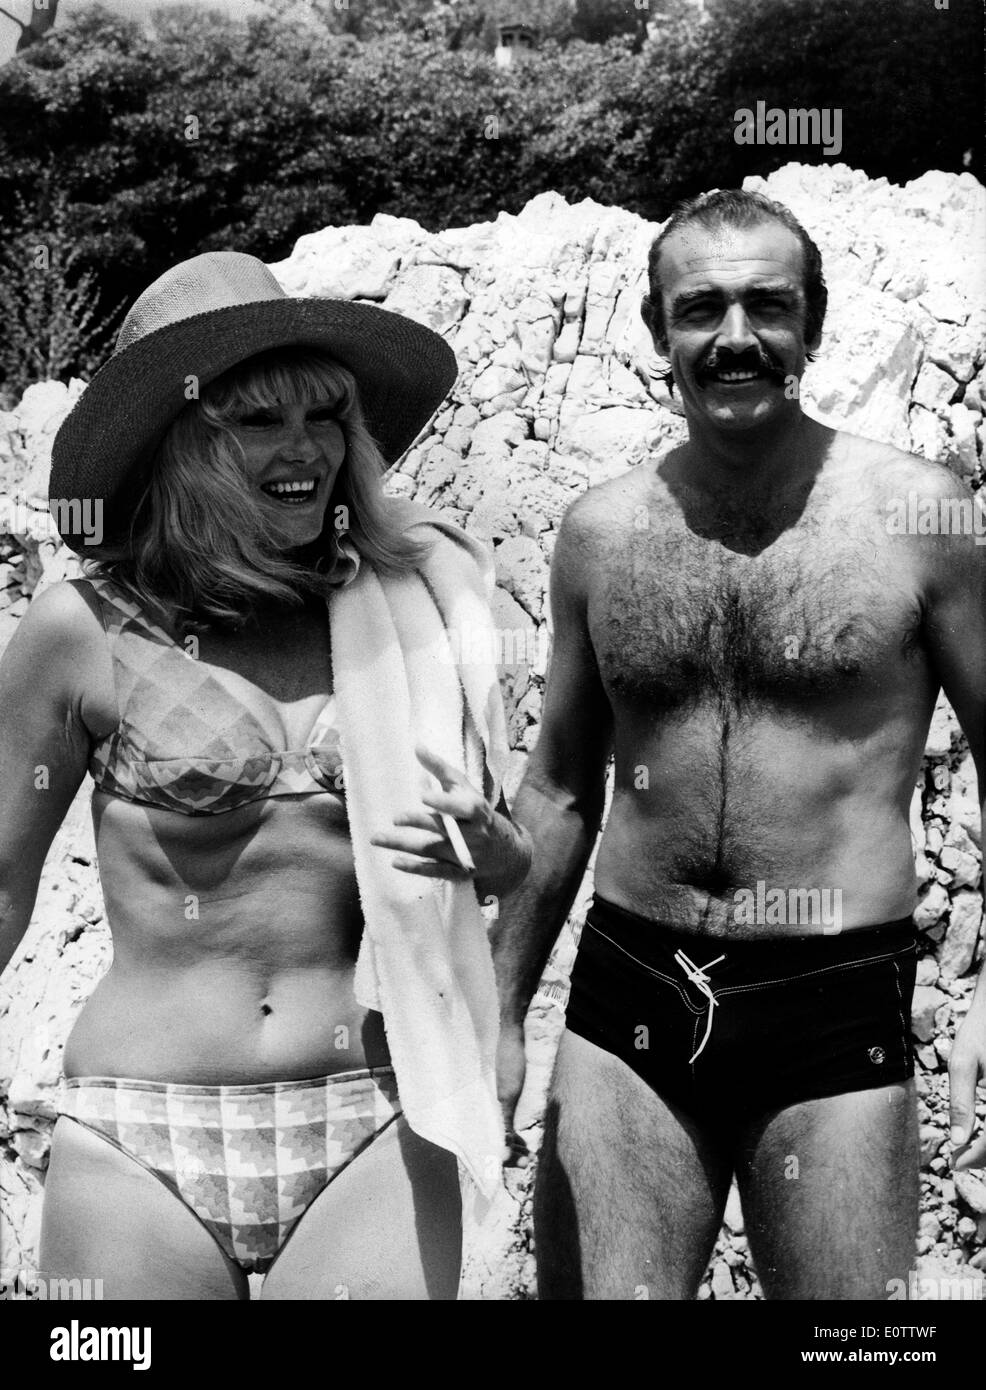 Actor Sean Connery At The Beach With Wife Diane Cilento